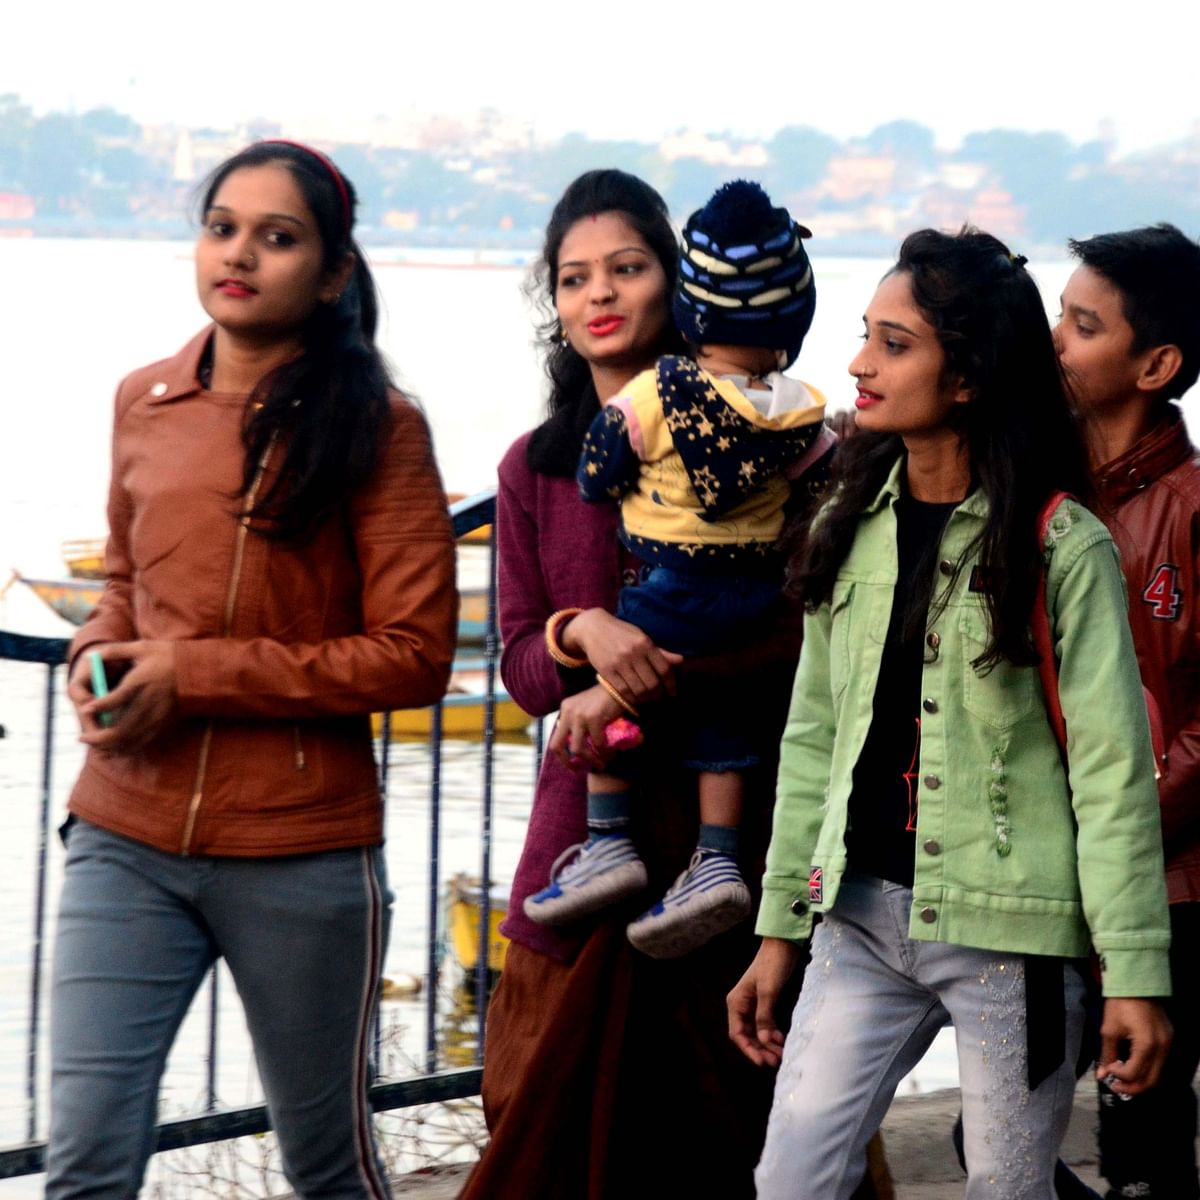 Cities in eastern MP witness sharp drop in temperature